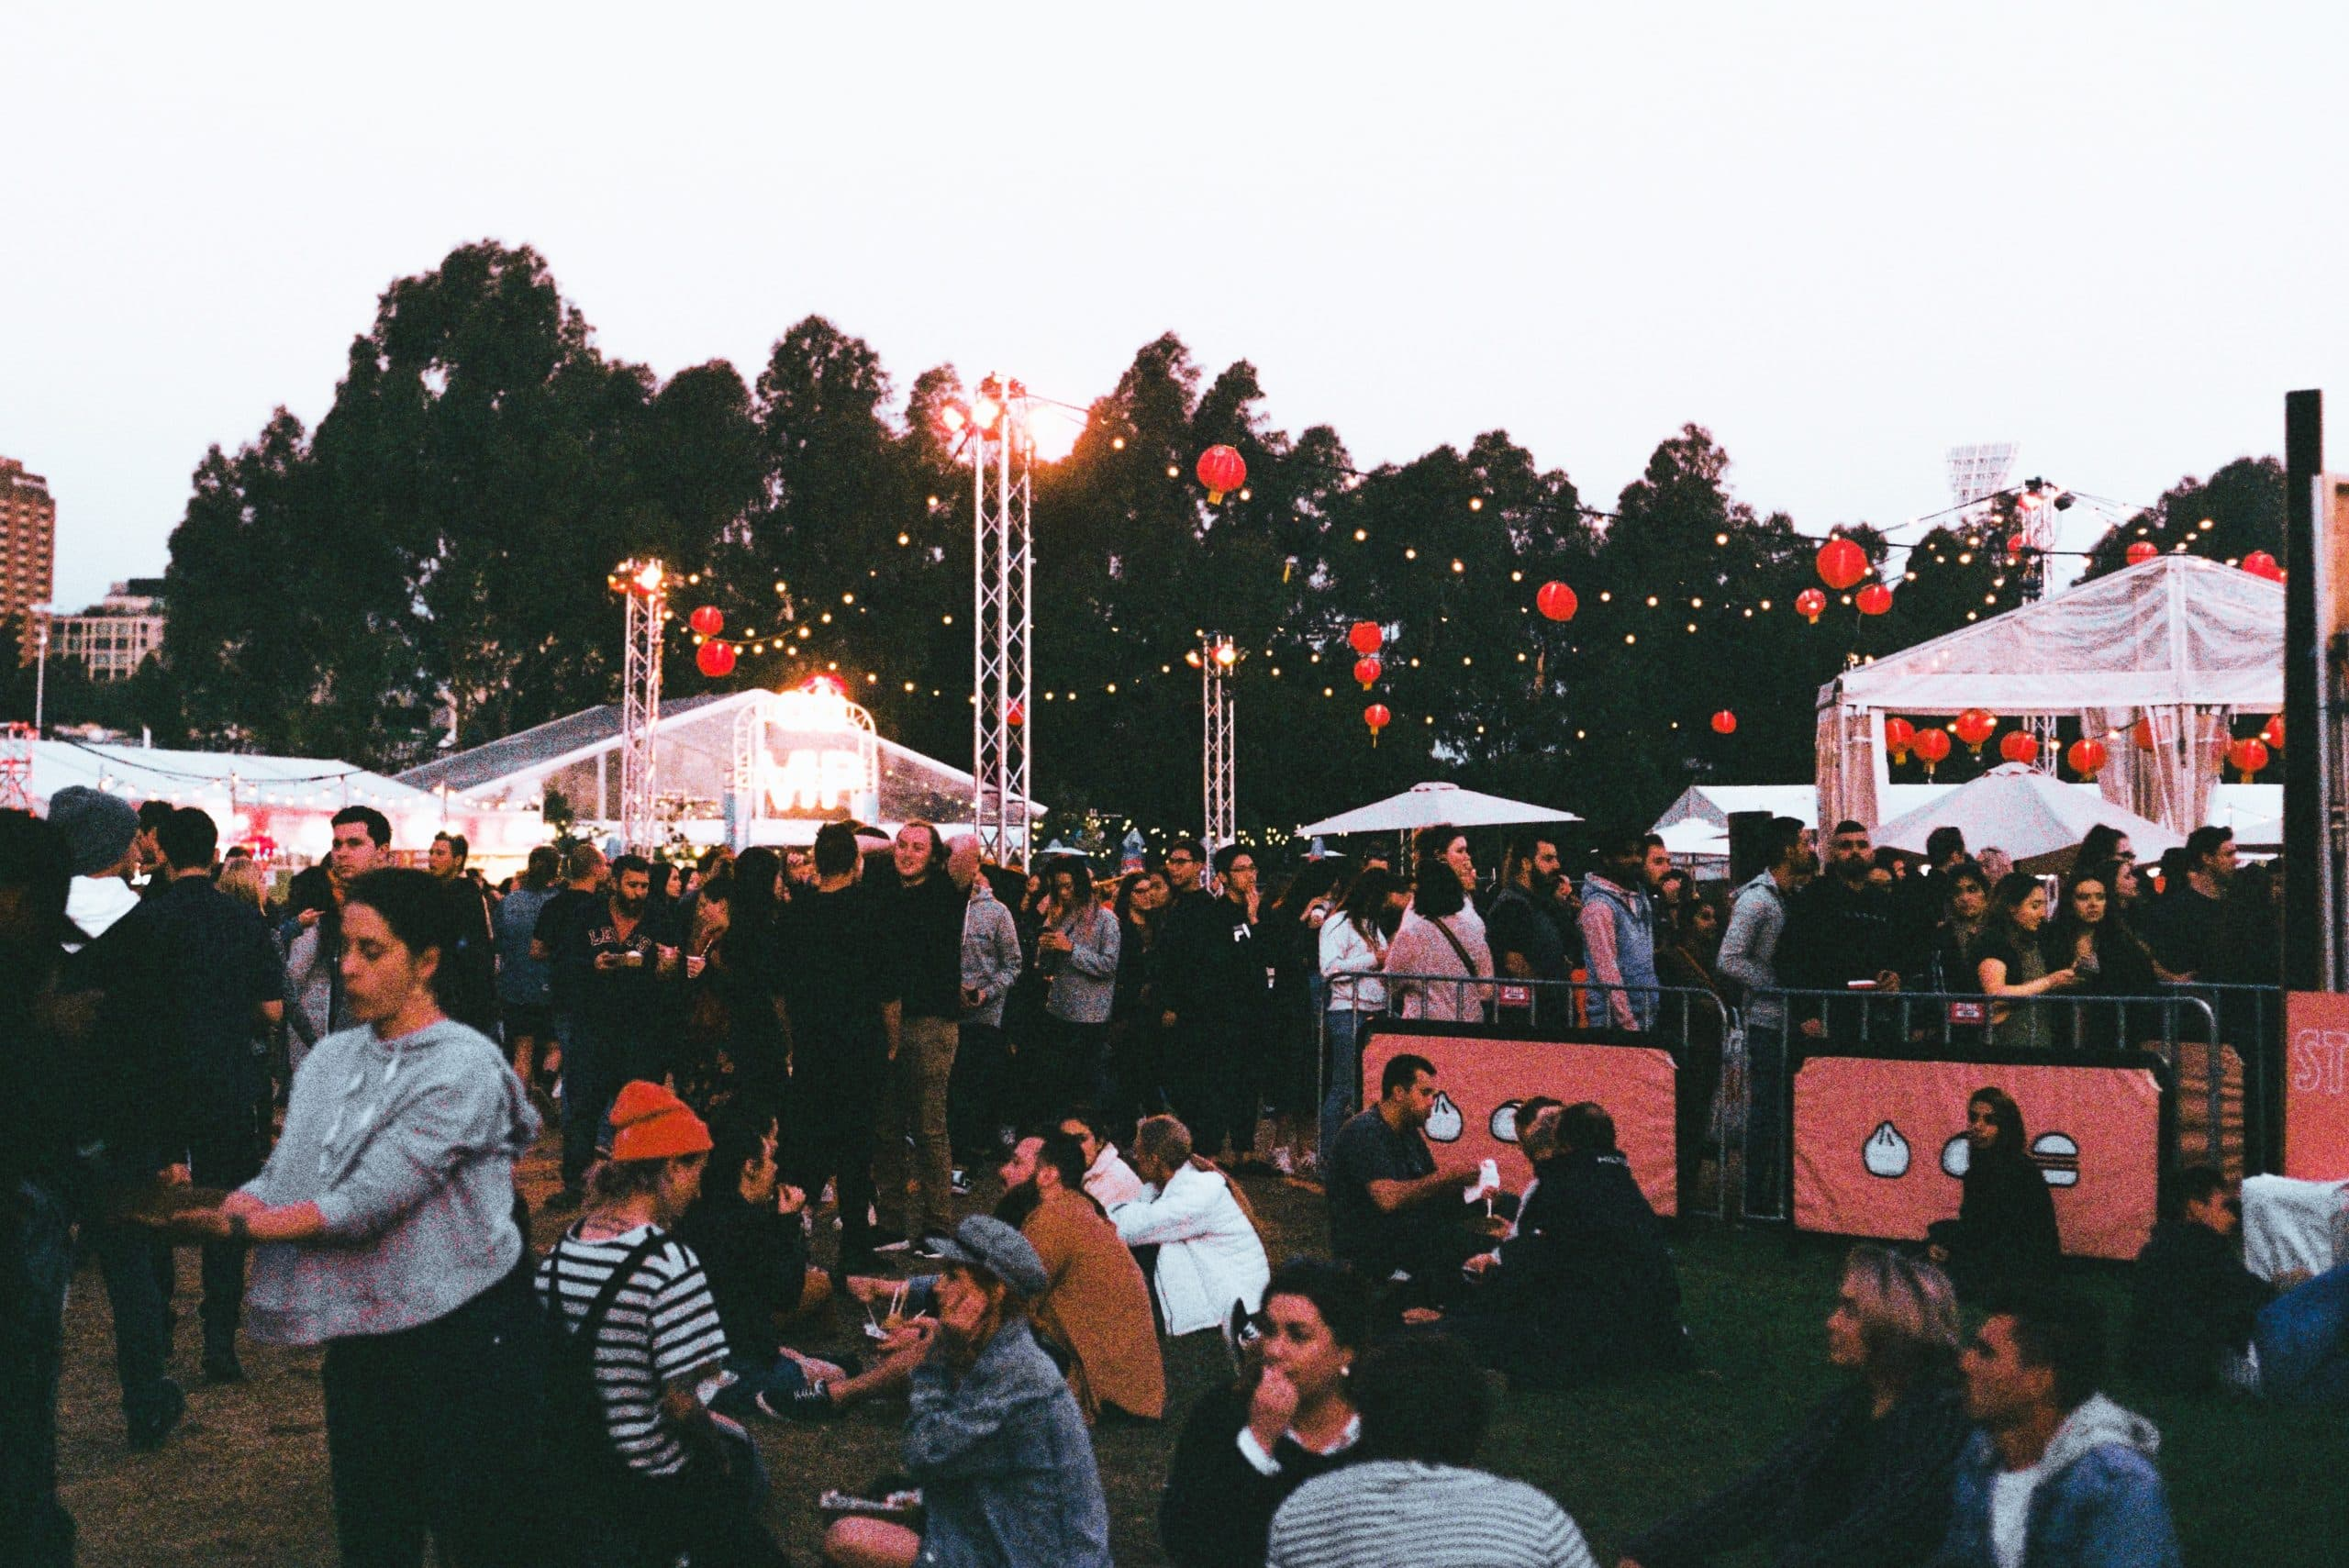 The Best Filmmaking Blogs in 2021 - An image of people sitting on the grass at a festival